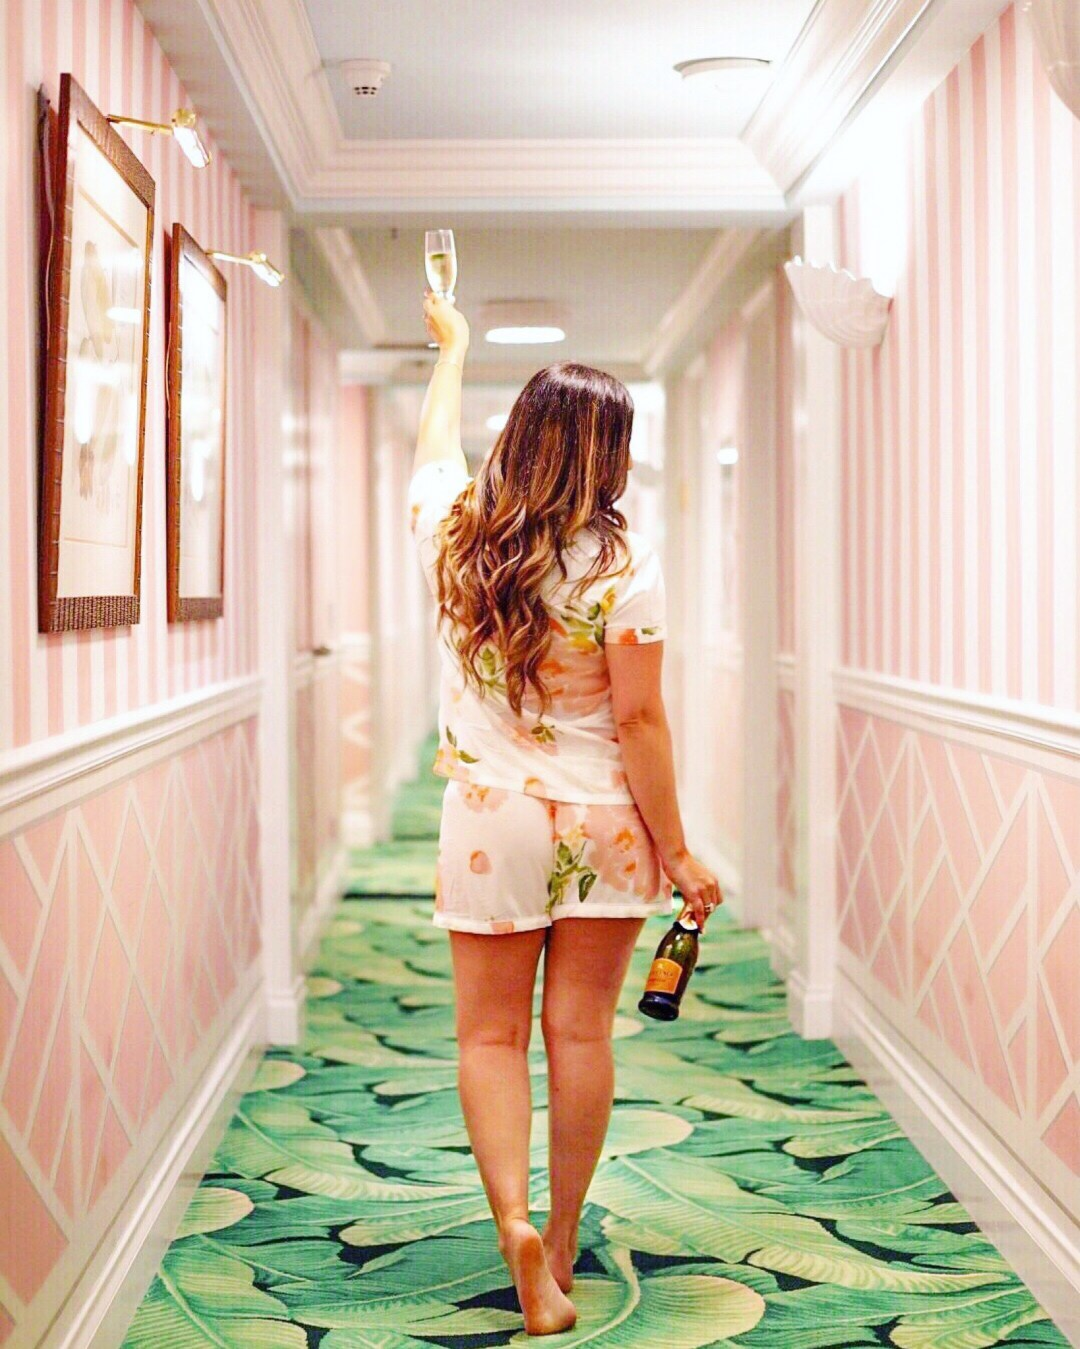 Colony Palm Beach hotel pink hallway - Jaime Cittadino - travel blogger